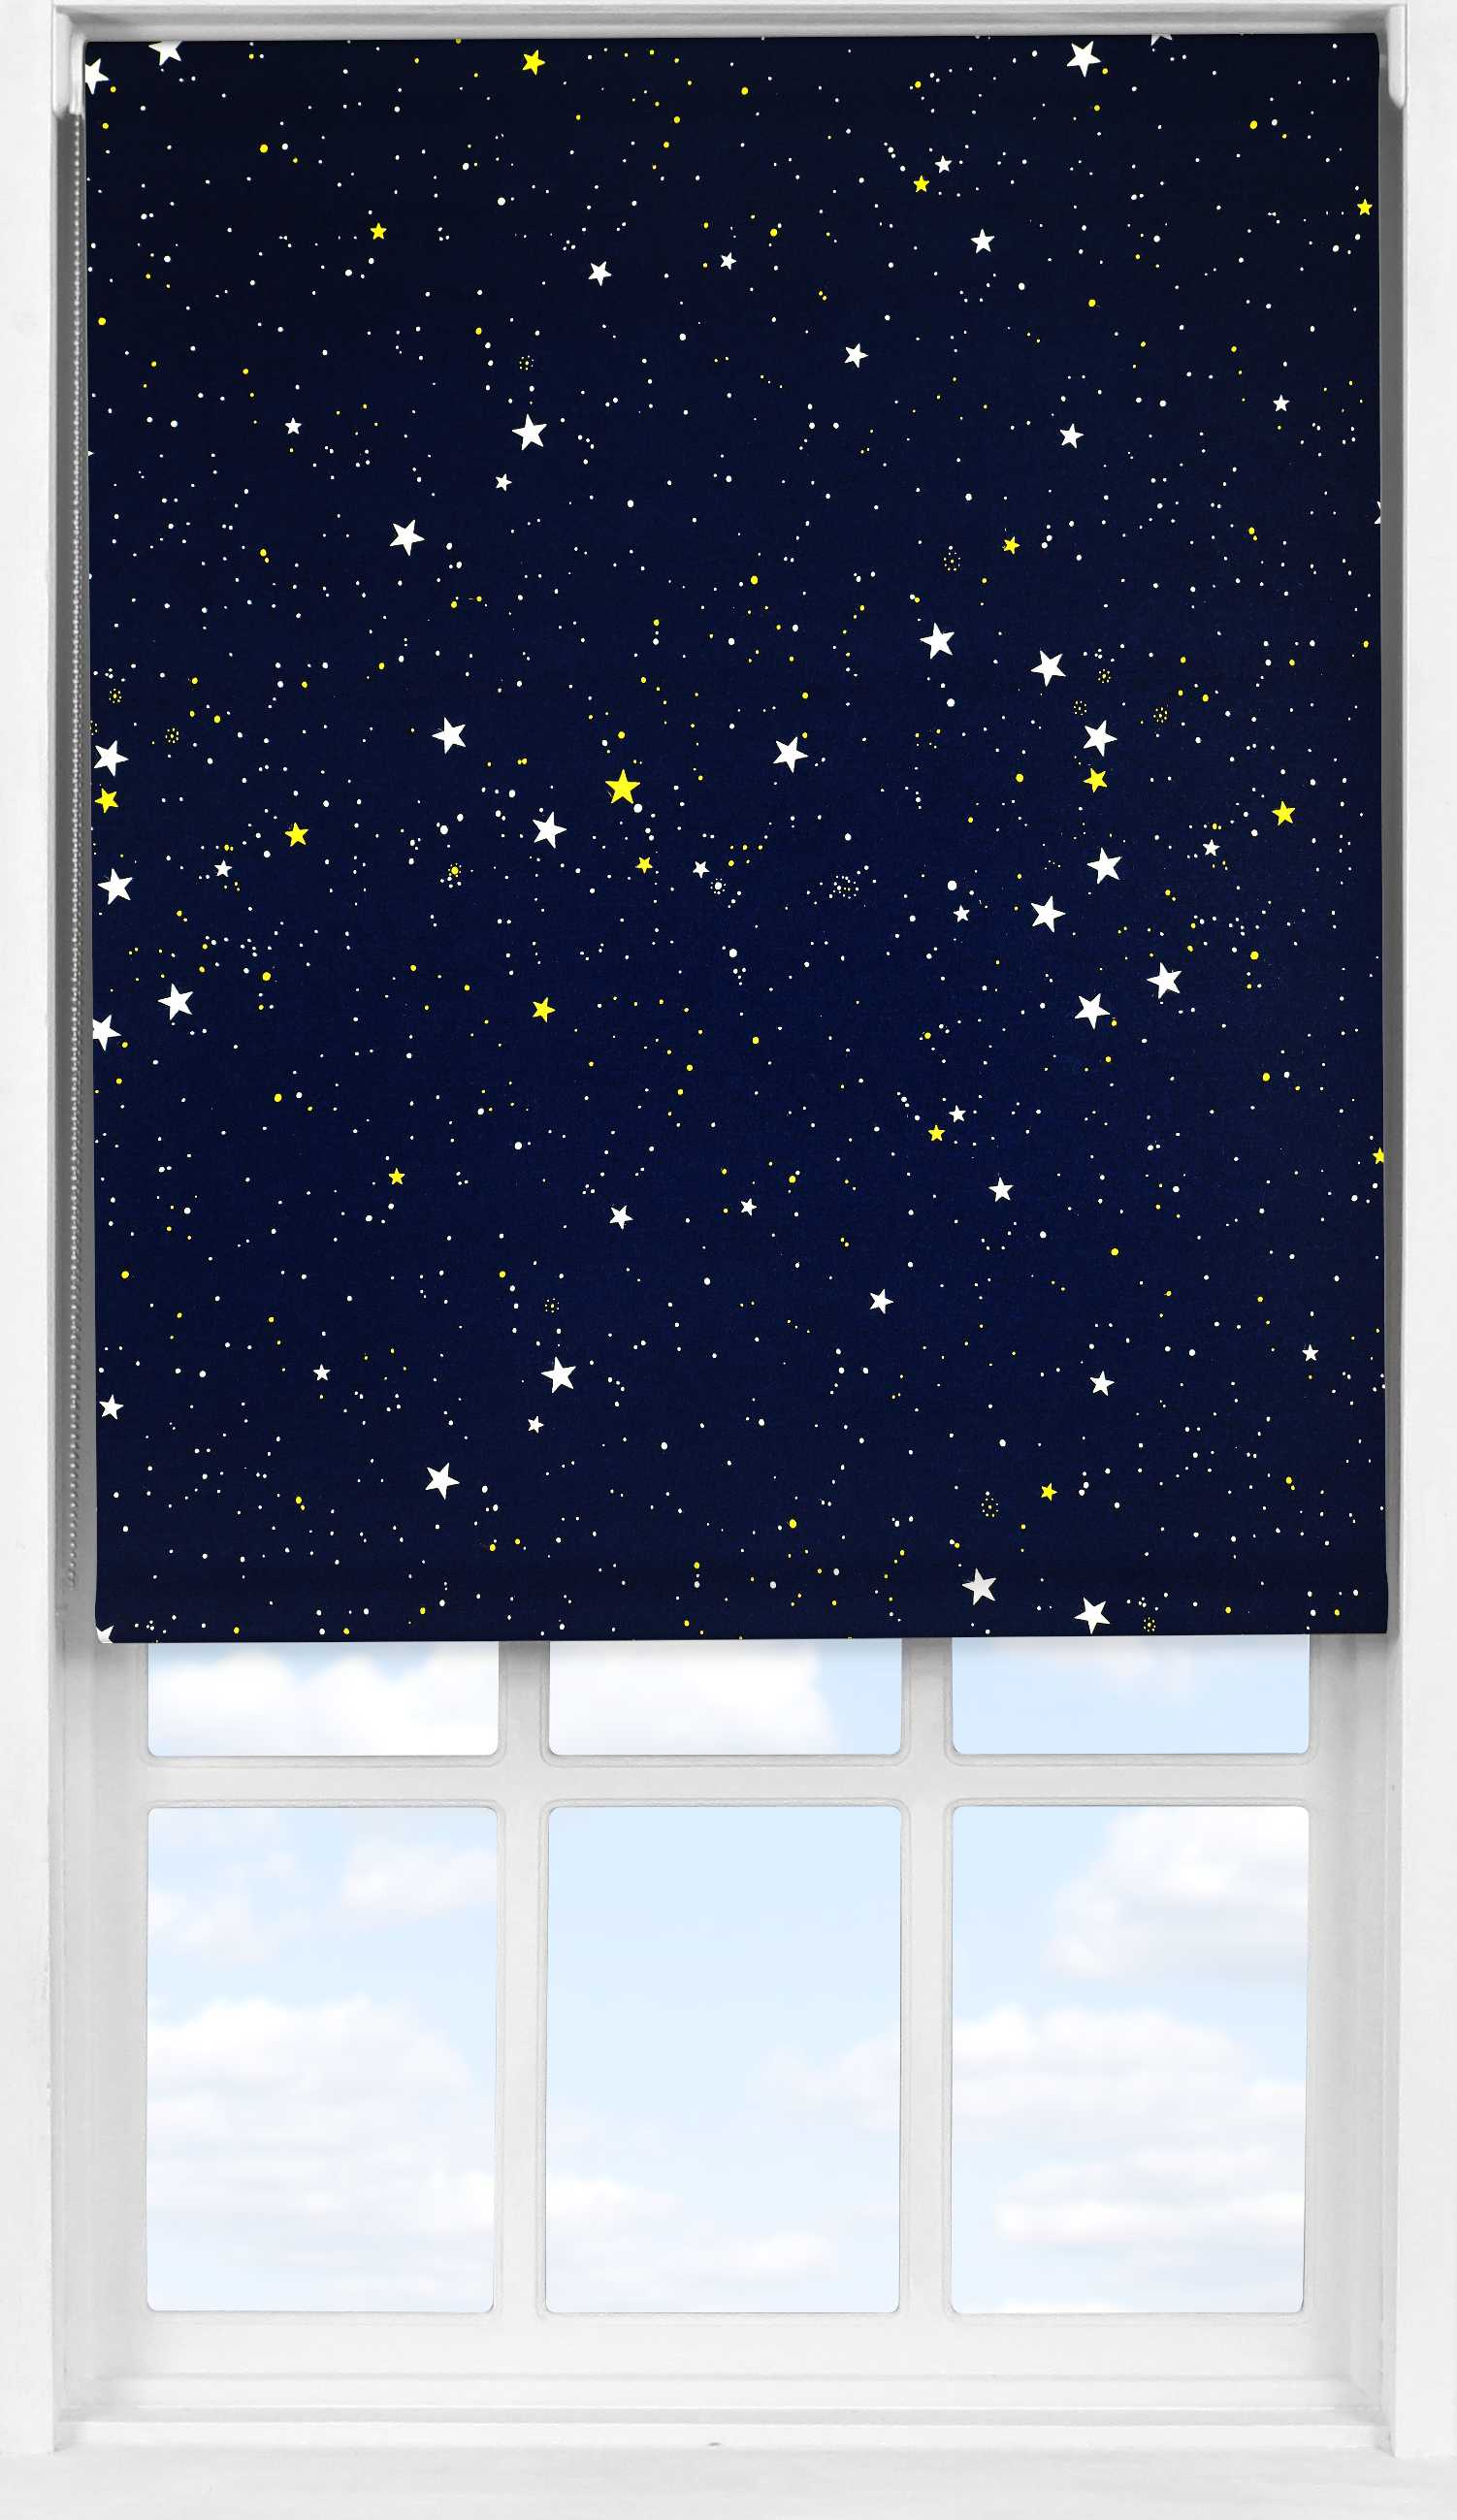 Easifit Roller Blind in Night Sky Blackout